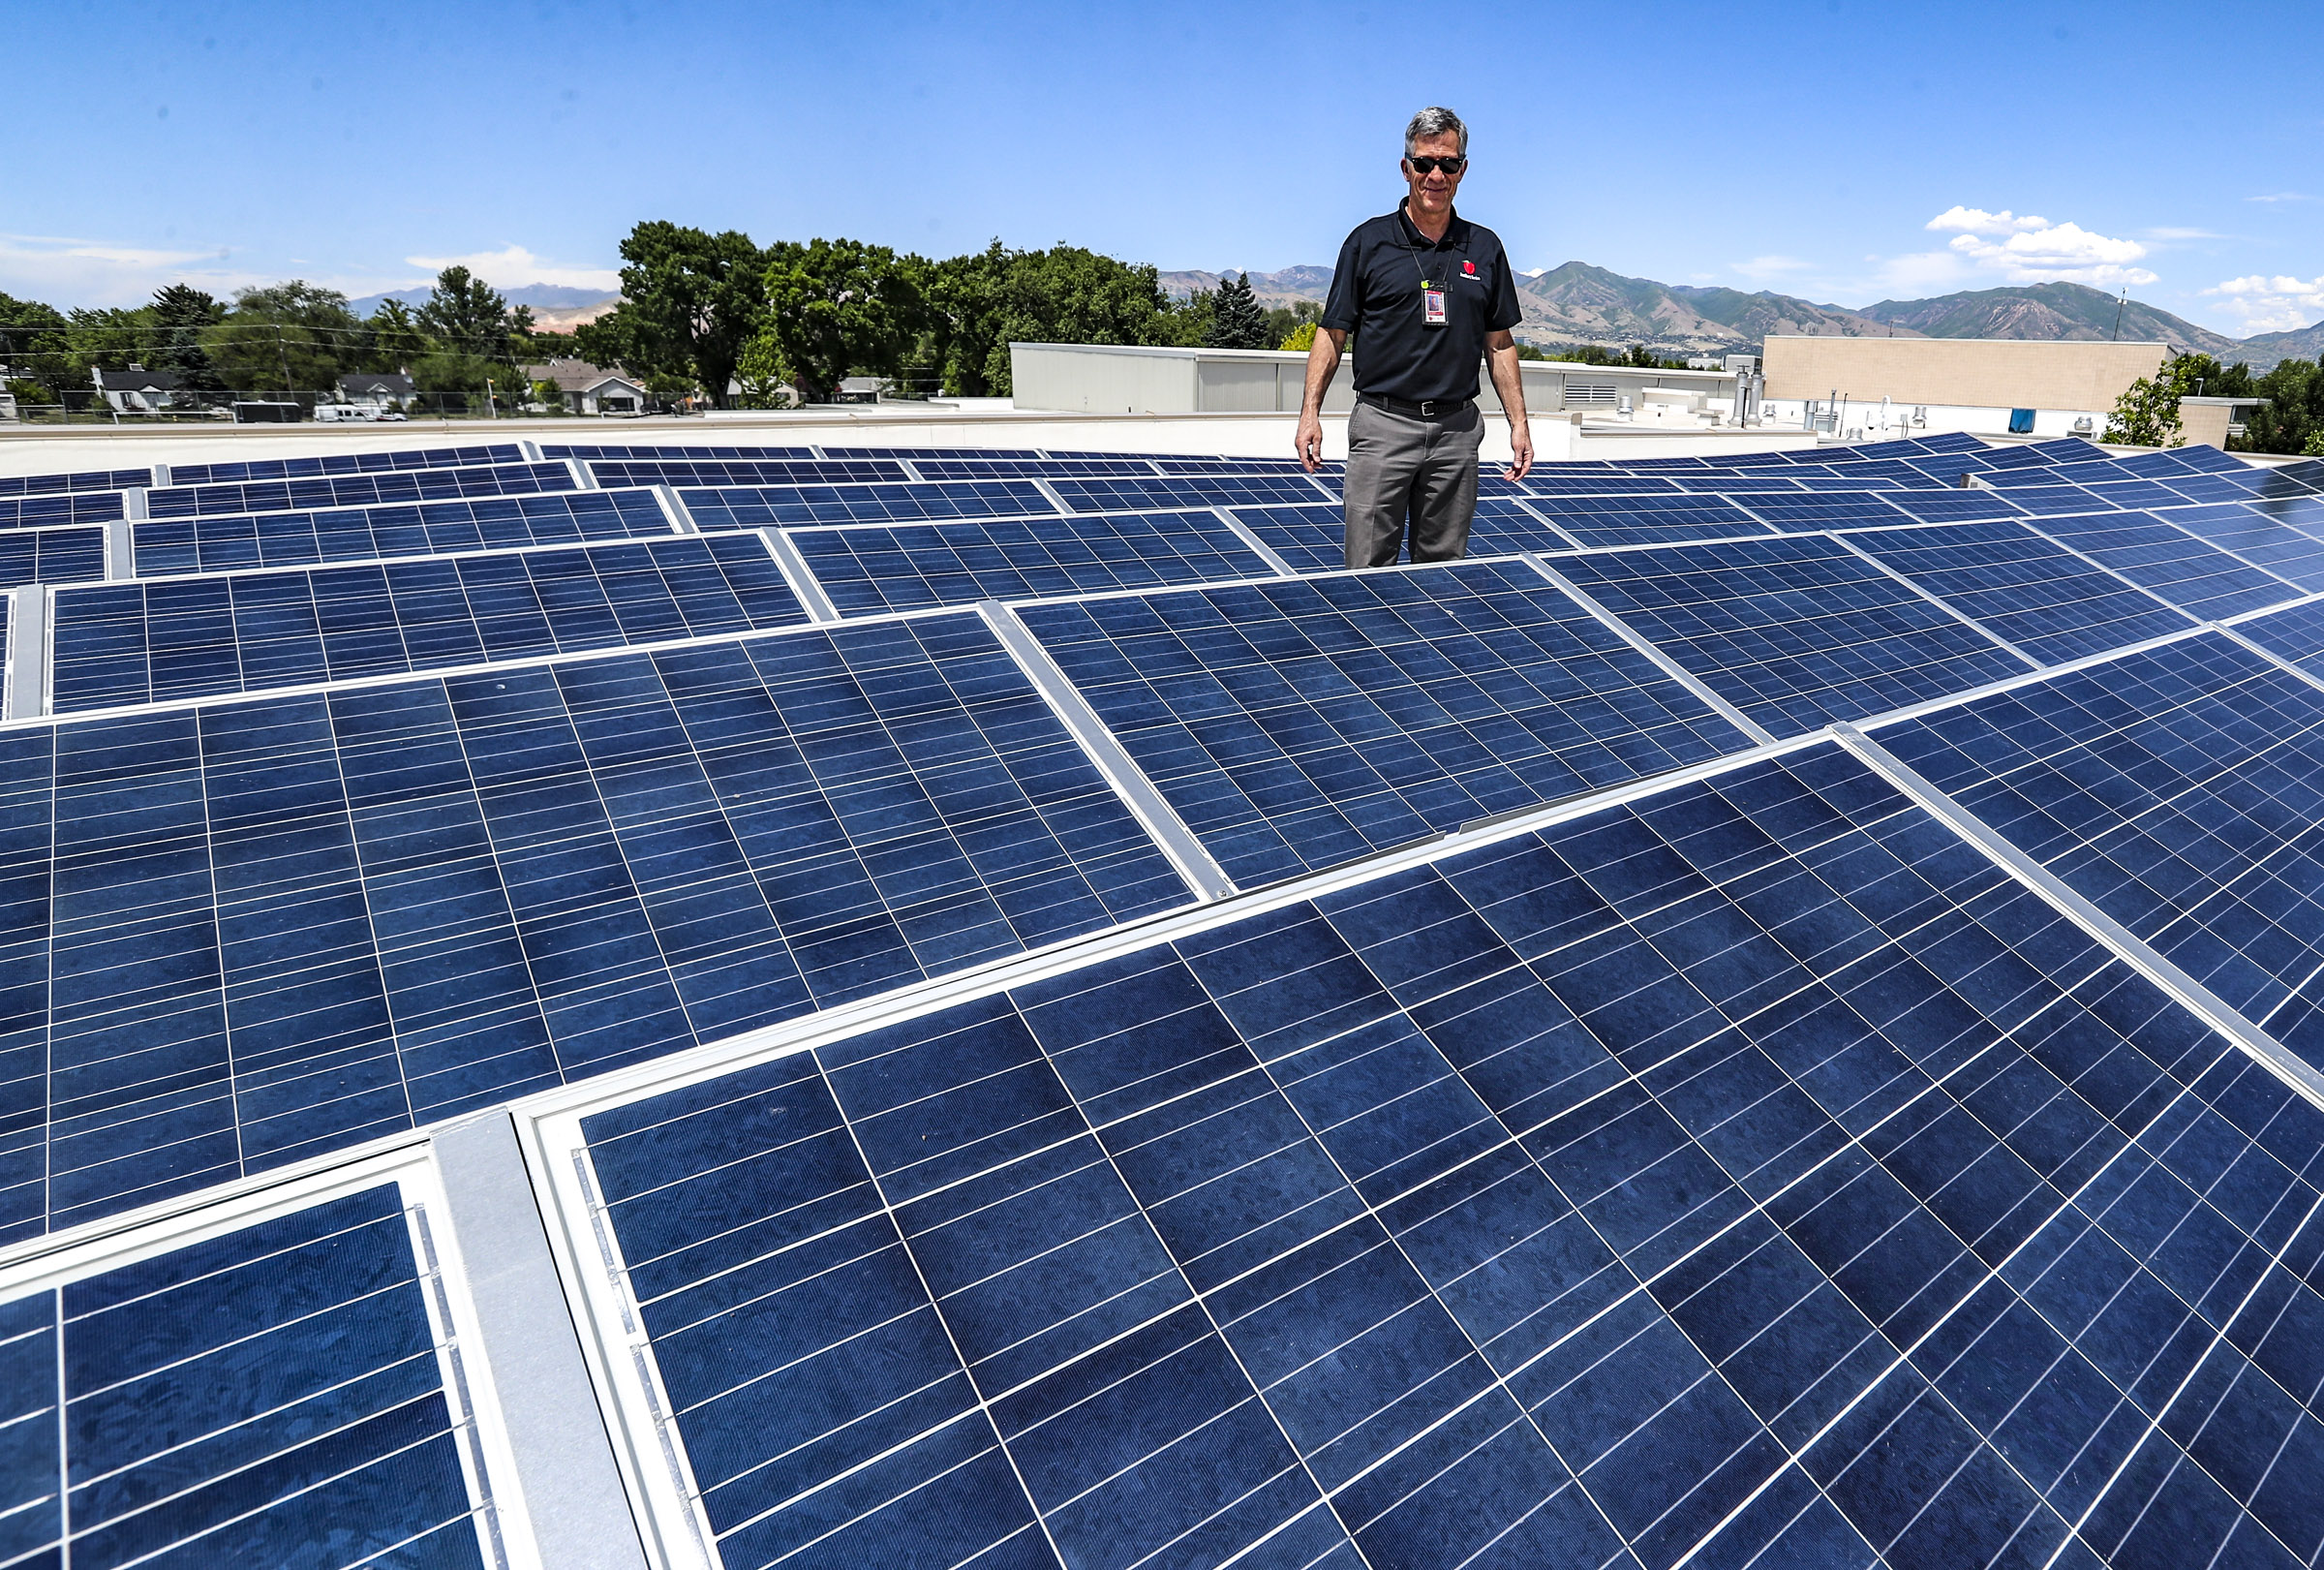 Greg Libecci, energy and resource manager for the Salt Lake City School District, stands with solar panels on the roof of Mountain View Elementary School in Salt Lake City on Wednesday, June 3, 2020.